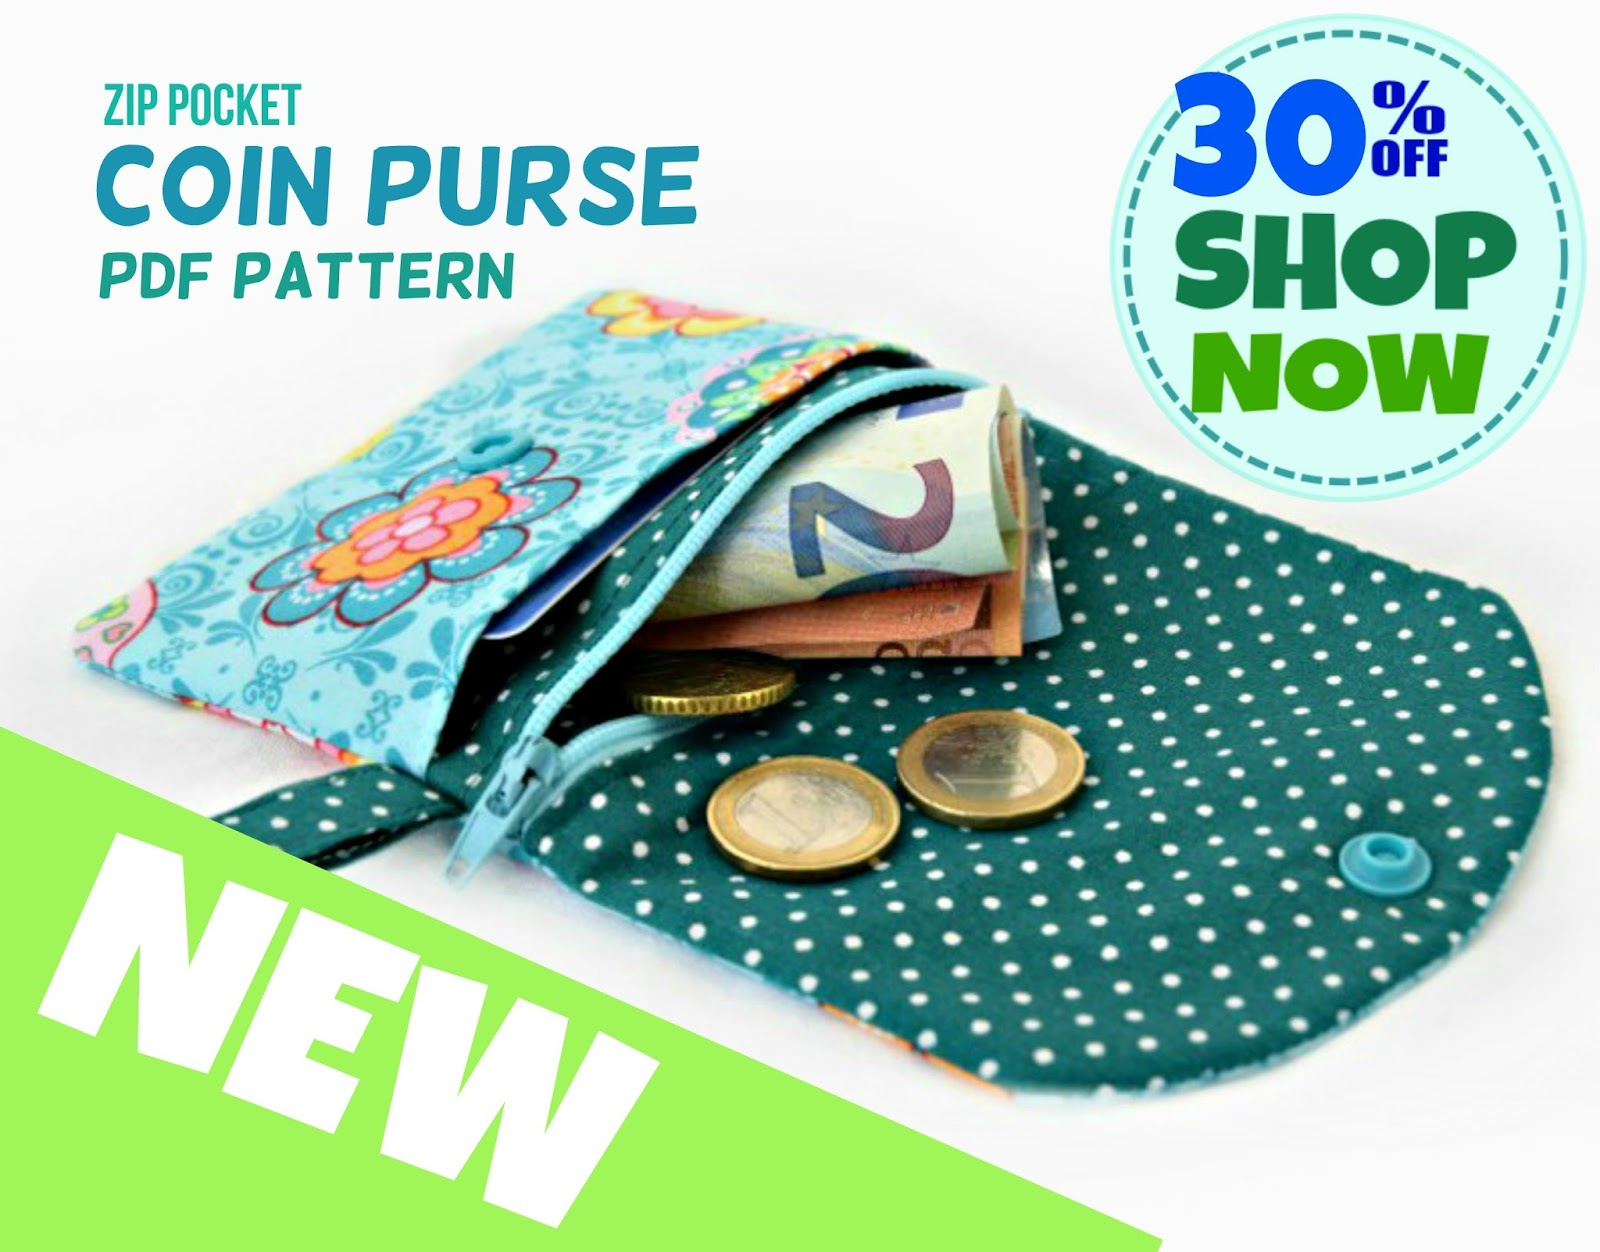 New Coin Purse Pattern - 30% off for 2 days only.